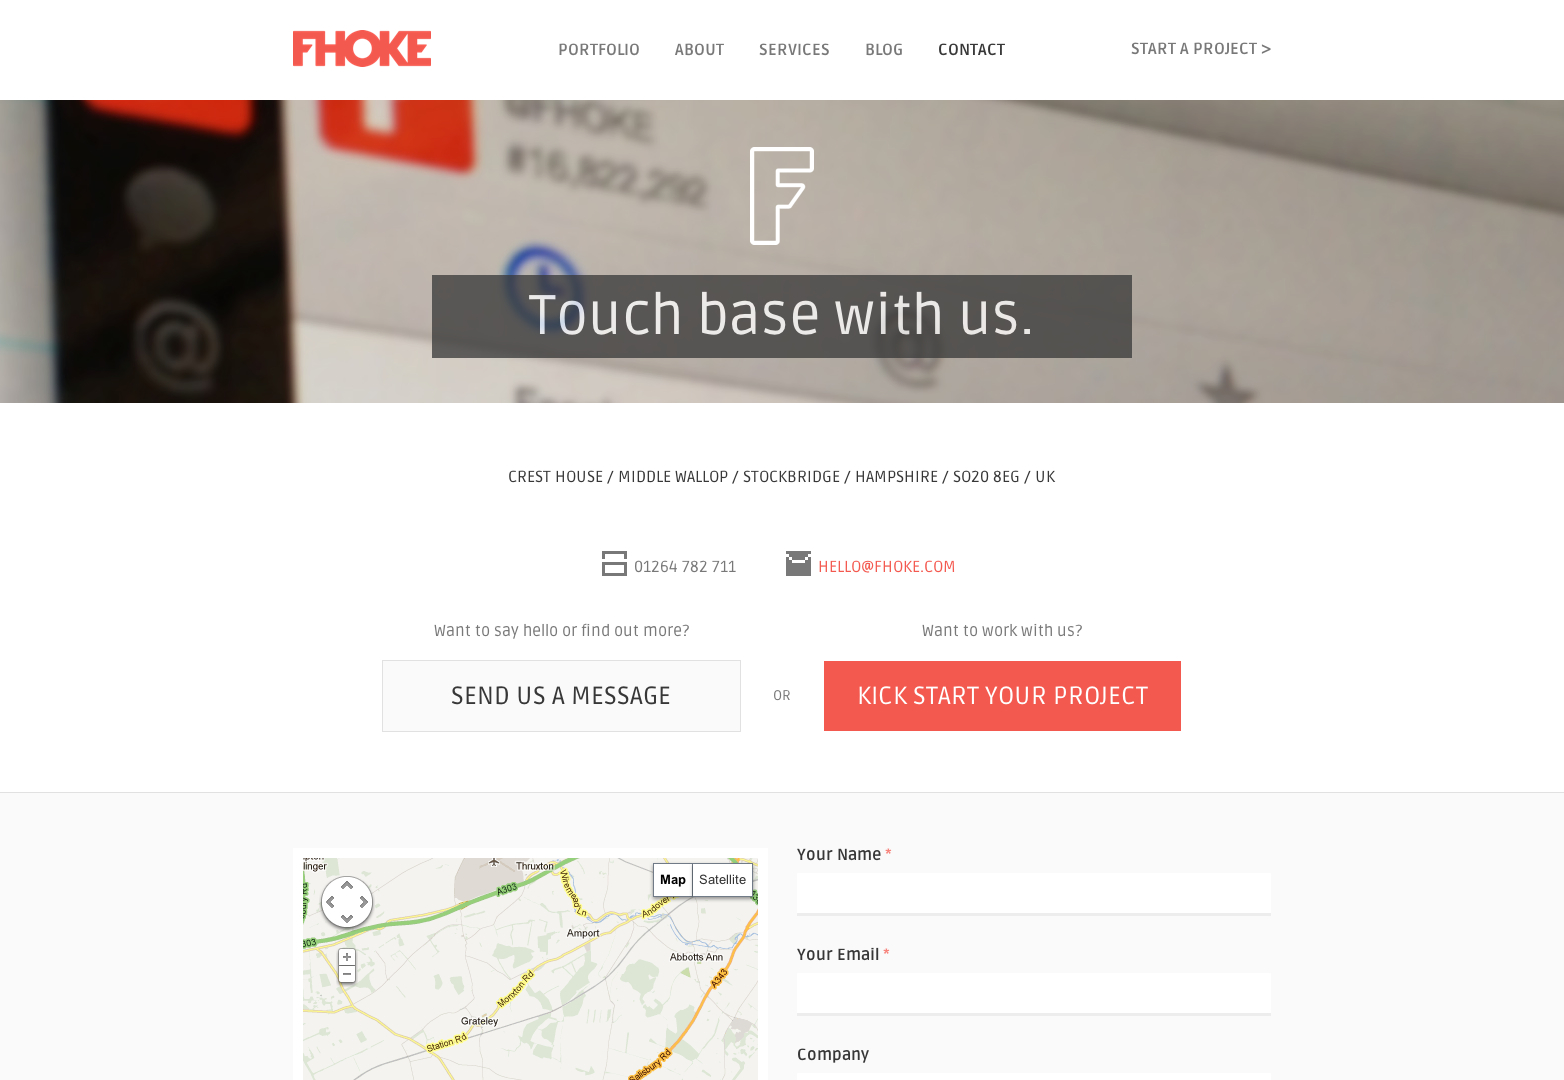 20 excellent contact pages | Webdesigner Depot